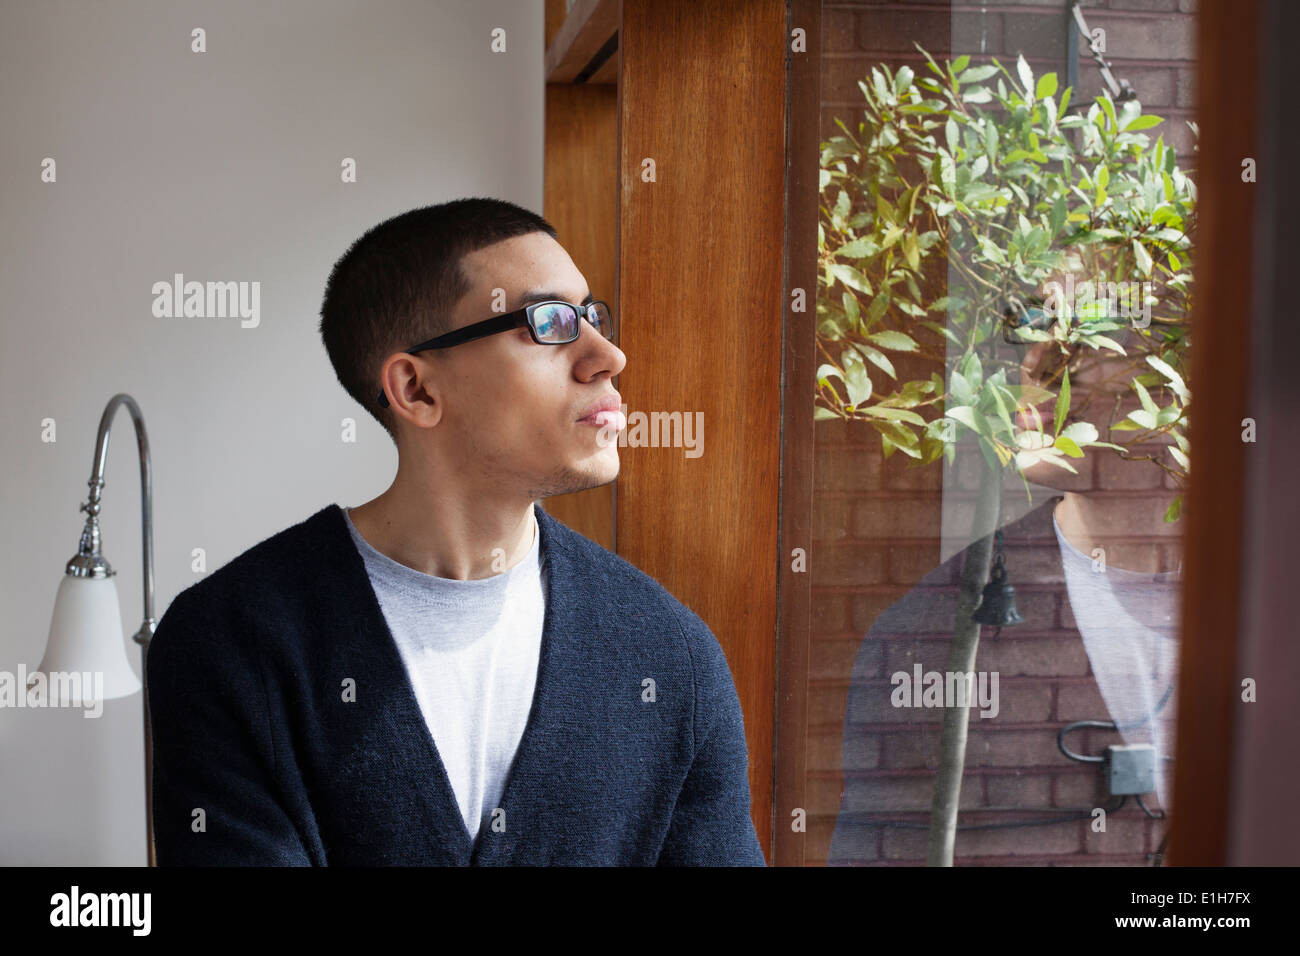 Young man looking through window - Stock Image